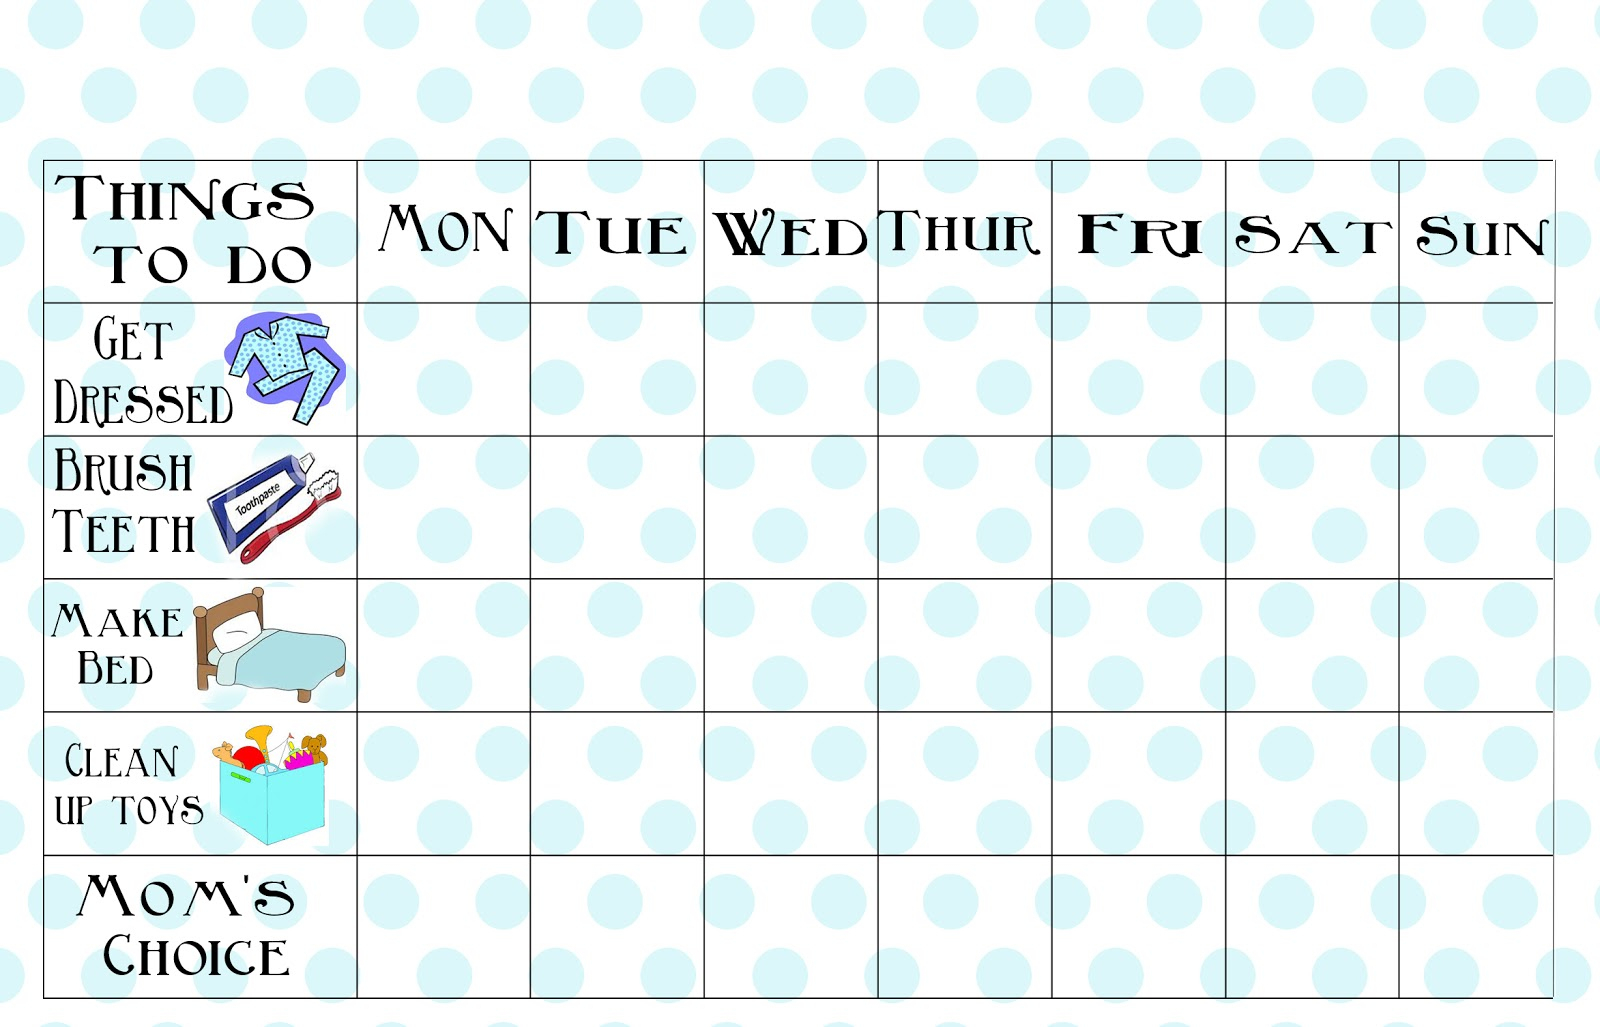 Free Printable Chore Chart - Free Printable Chore Charts For 7 Year Olds